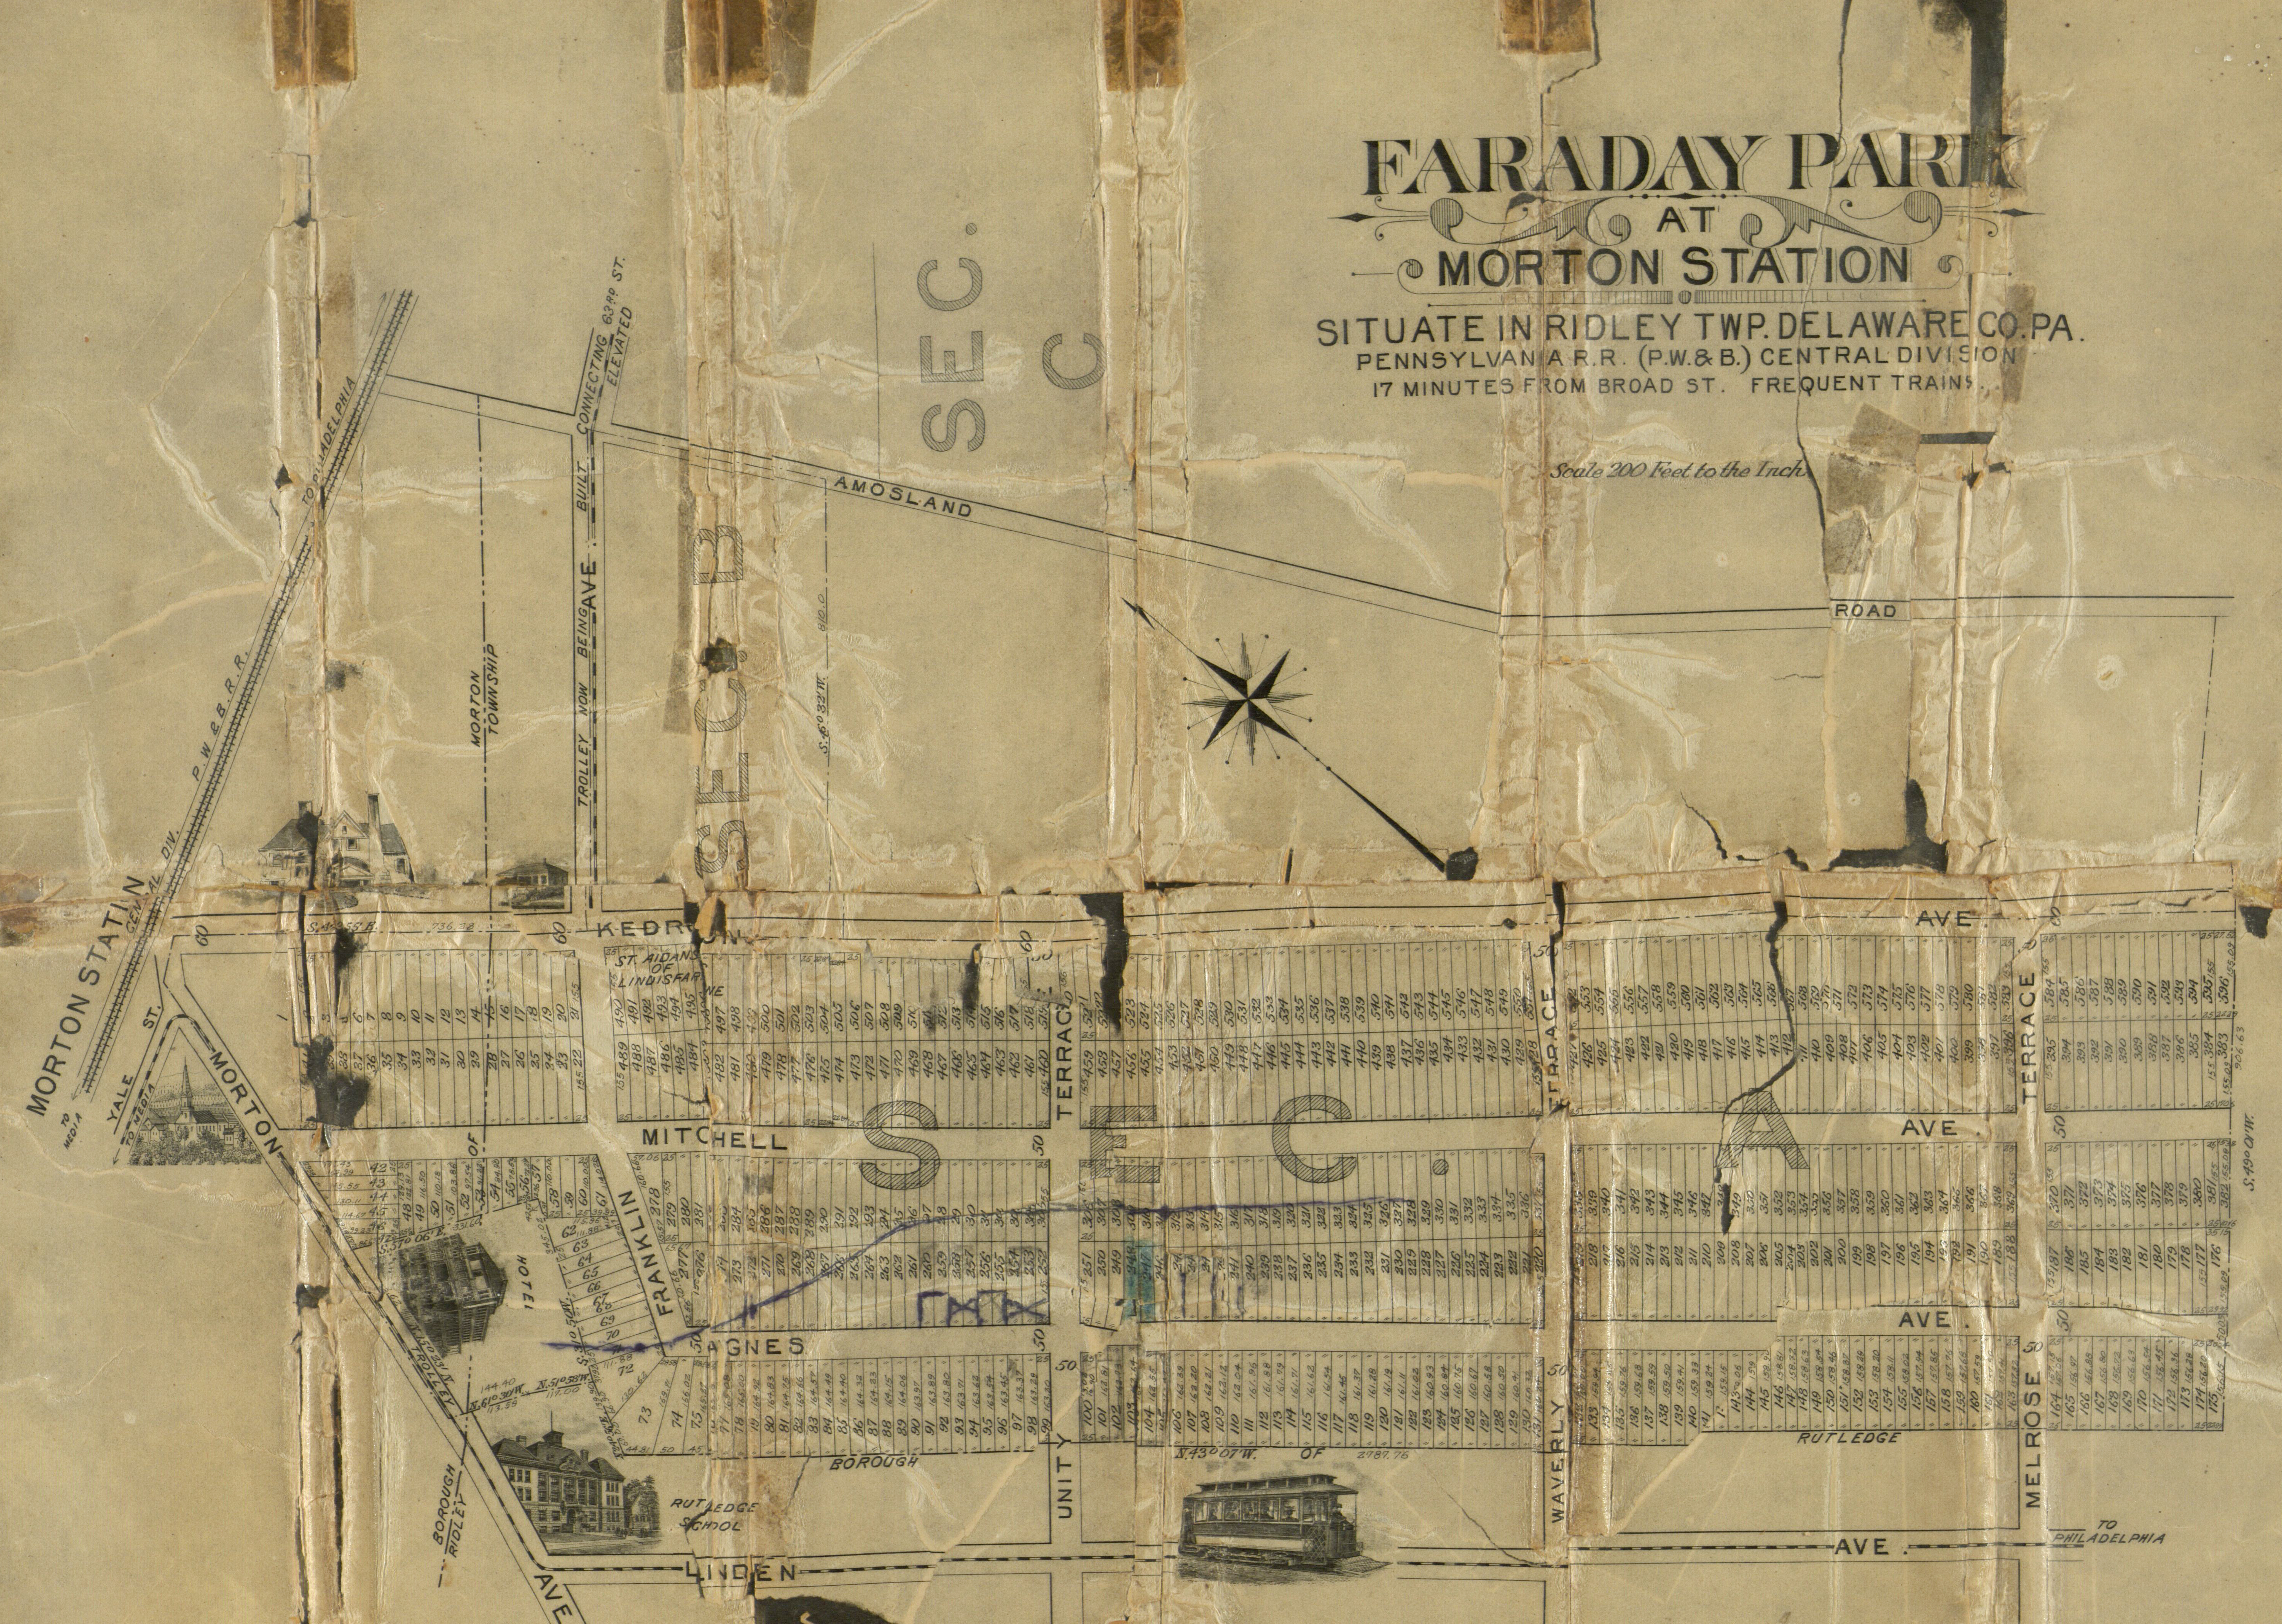 FaradayParkMapc.1902 Map Of Springfield Ma Businesses on street map lexington ma, map of manchester nh, street map chelmsford ma, map of maine, map of silver spring md, map of essex county mass, map of salt lake city ut, suffolk county town map ma, map of philadelphia, map of boston, map of downtown waterbury ct, map of new york, map of southfield mi, map of massachusetts, map of worcester, map springfield nh, map of south portland me, map of ri and mass, town of centerville ma, map of south bend in,